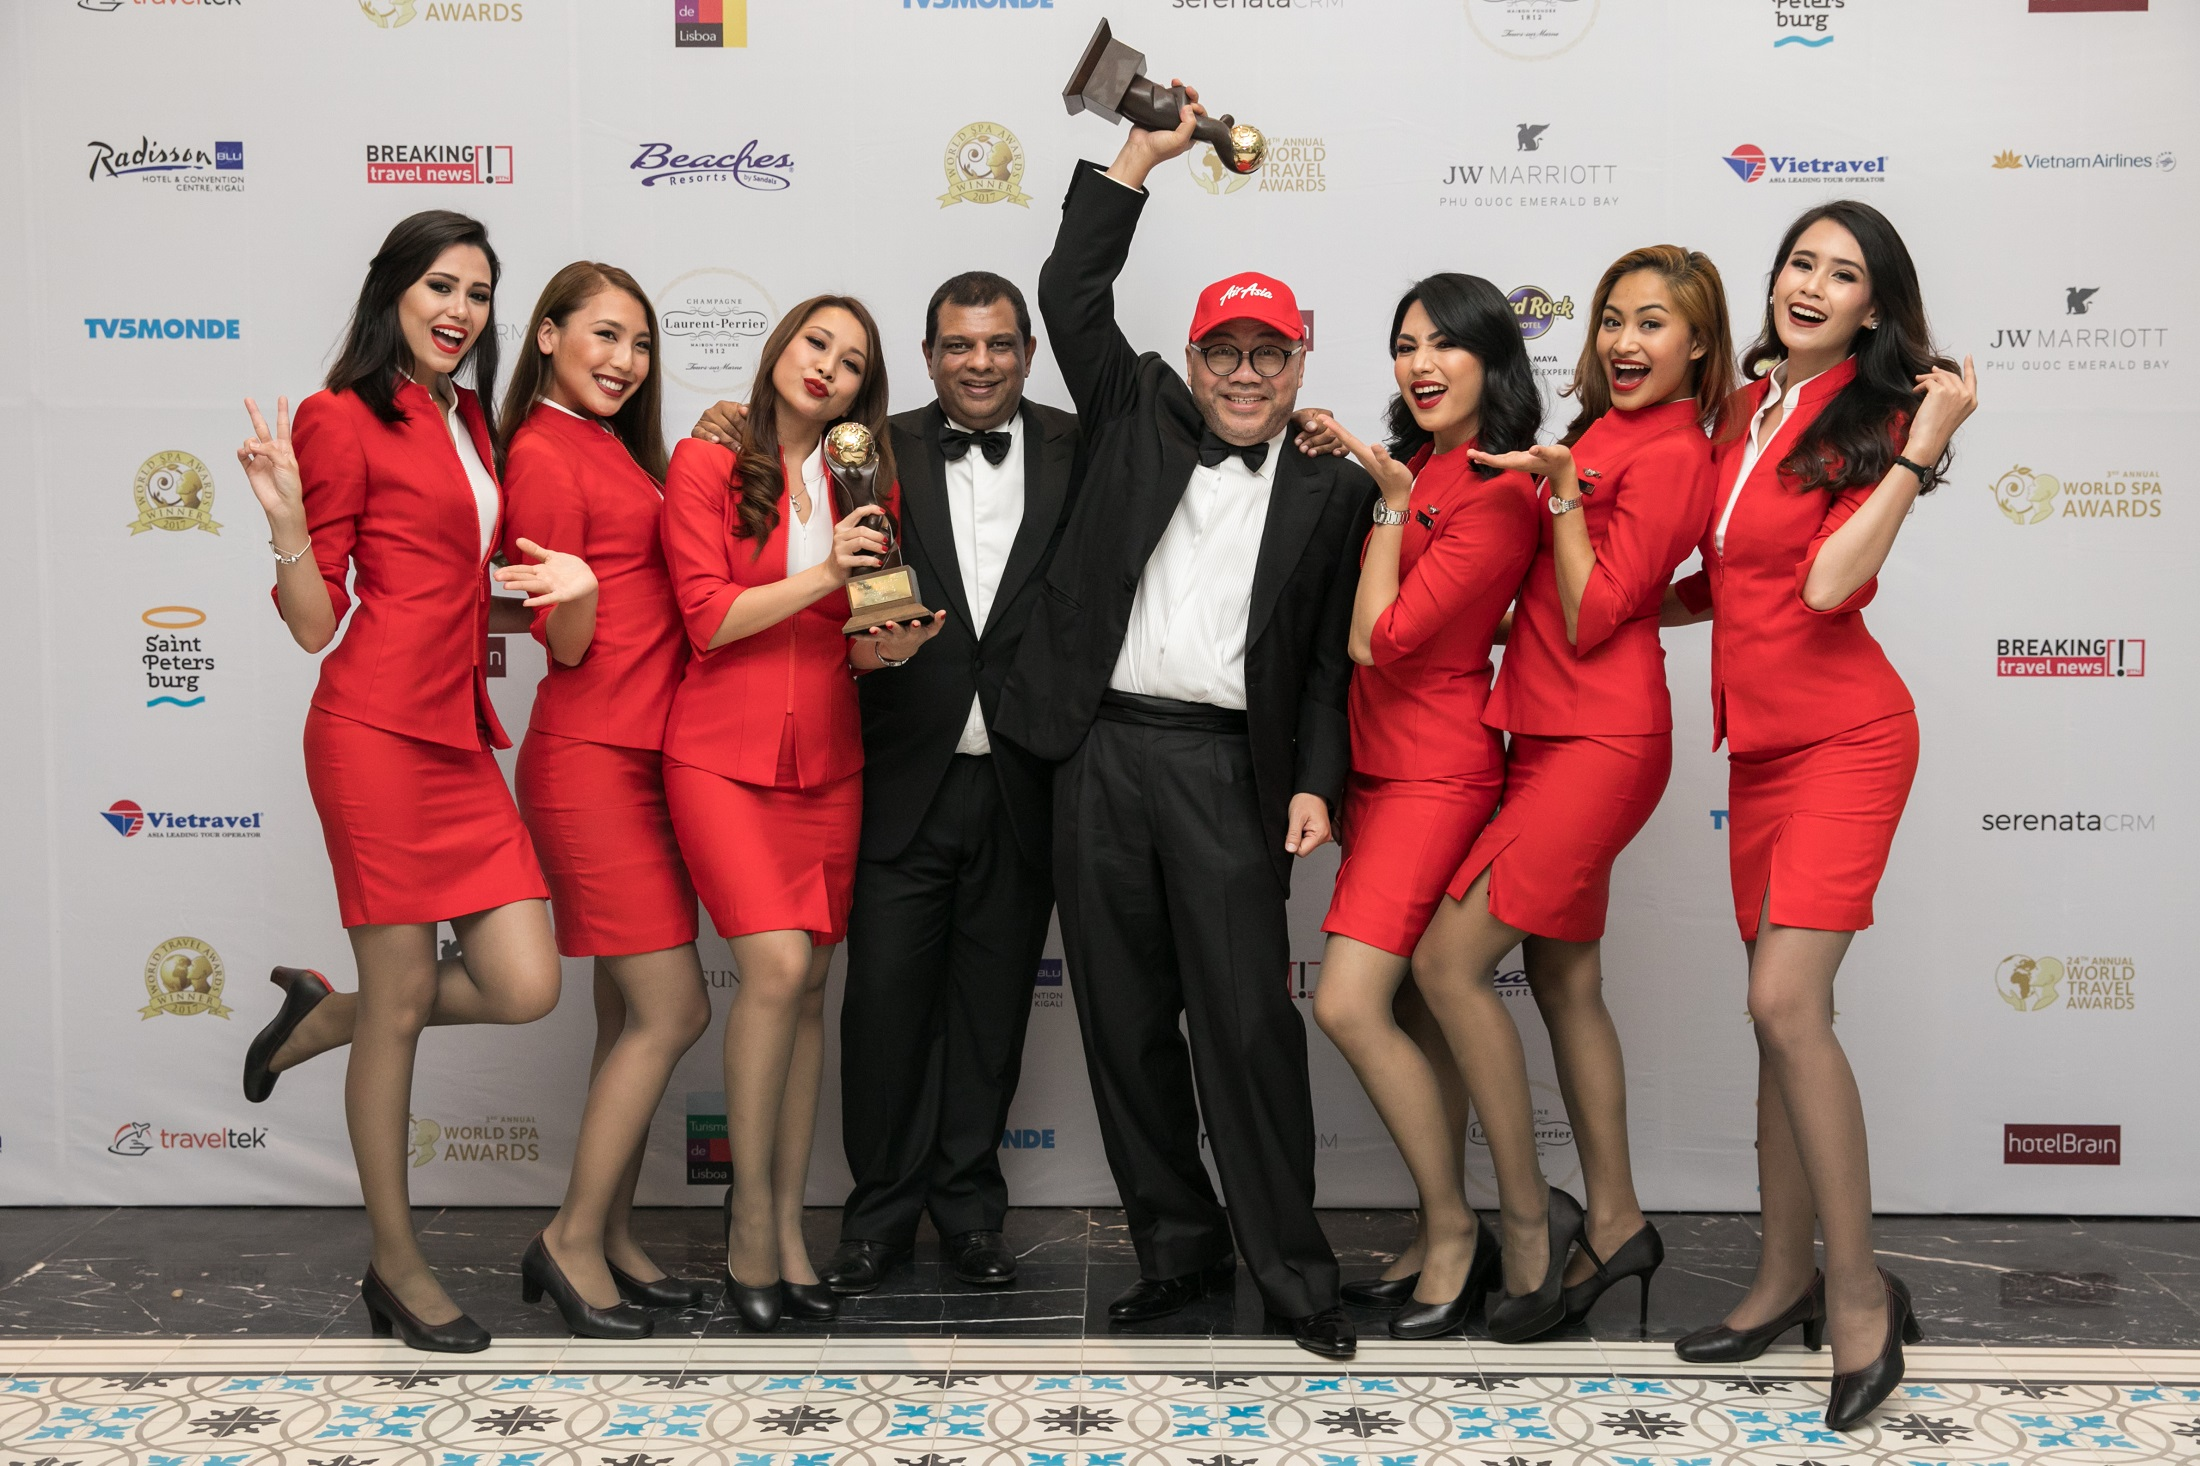 AirAsia named World's Leading Low-Cost Airline for 5th straight year at WTA.jpg